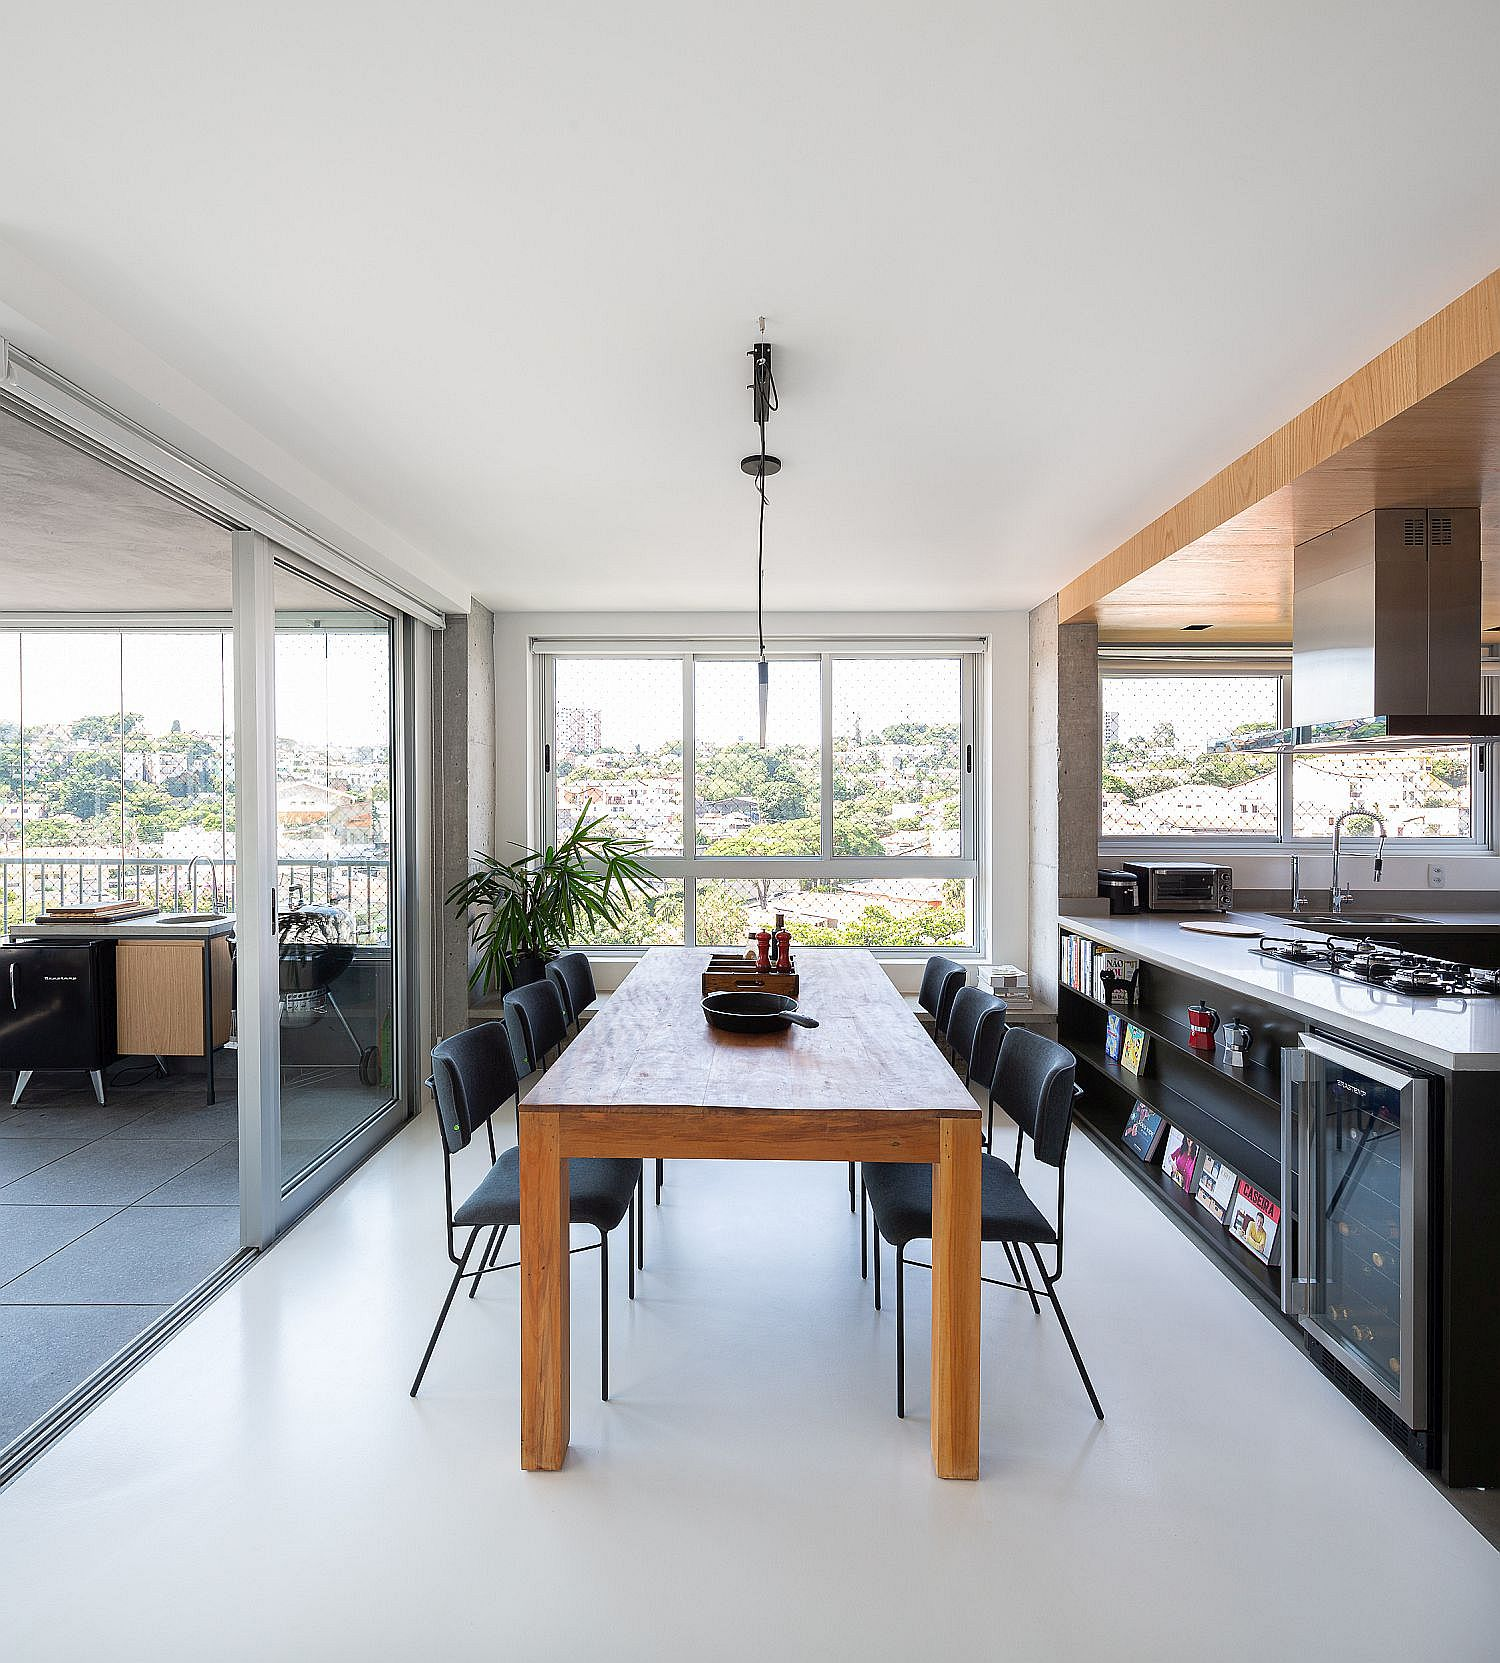 Wooden dining table sits between the kitchen on one side and the enclosed balcony on the other